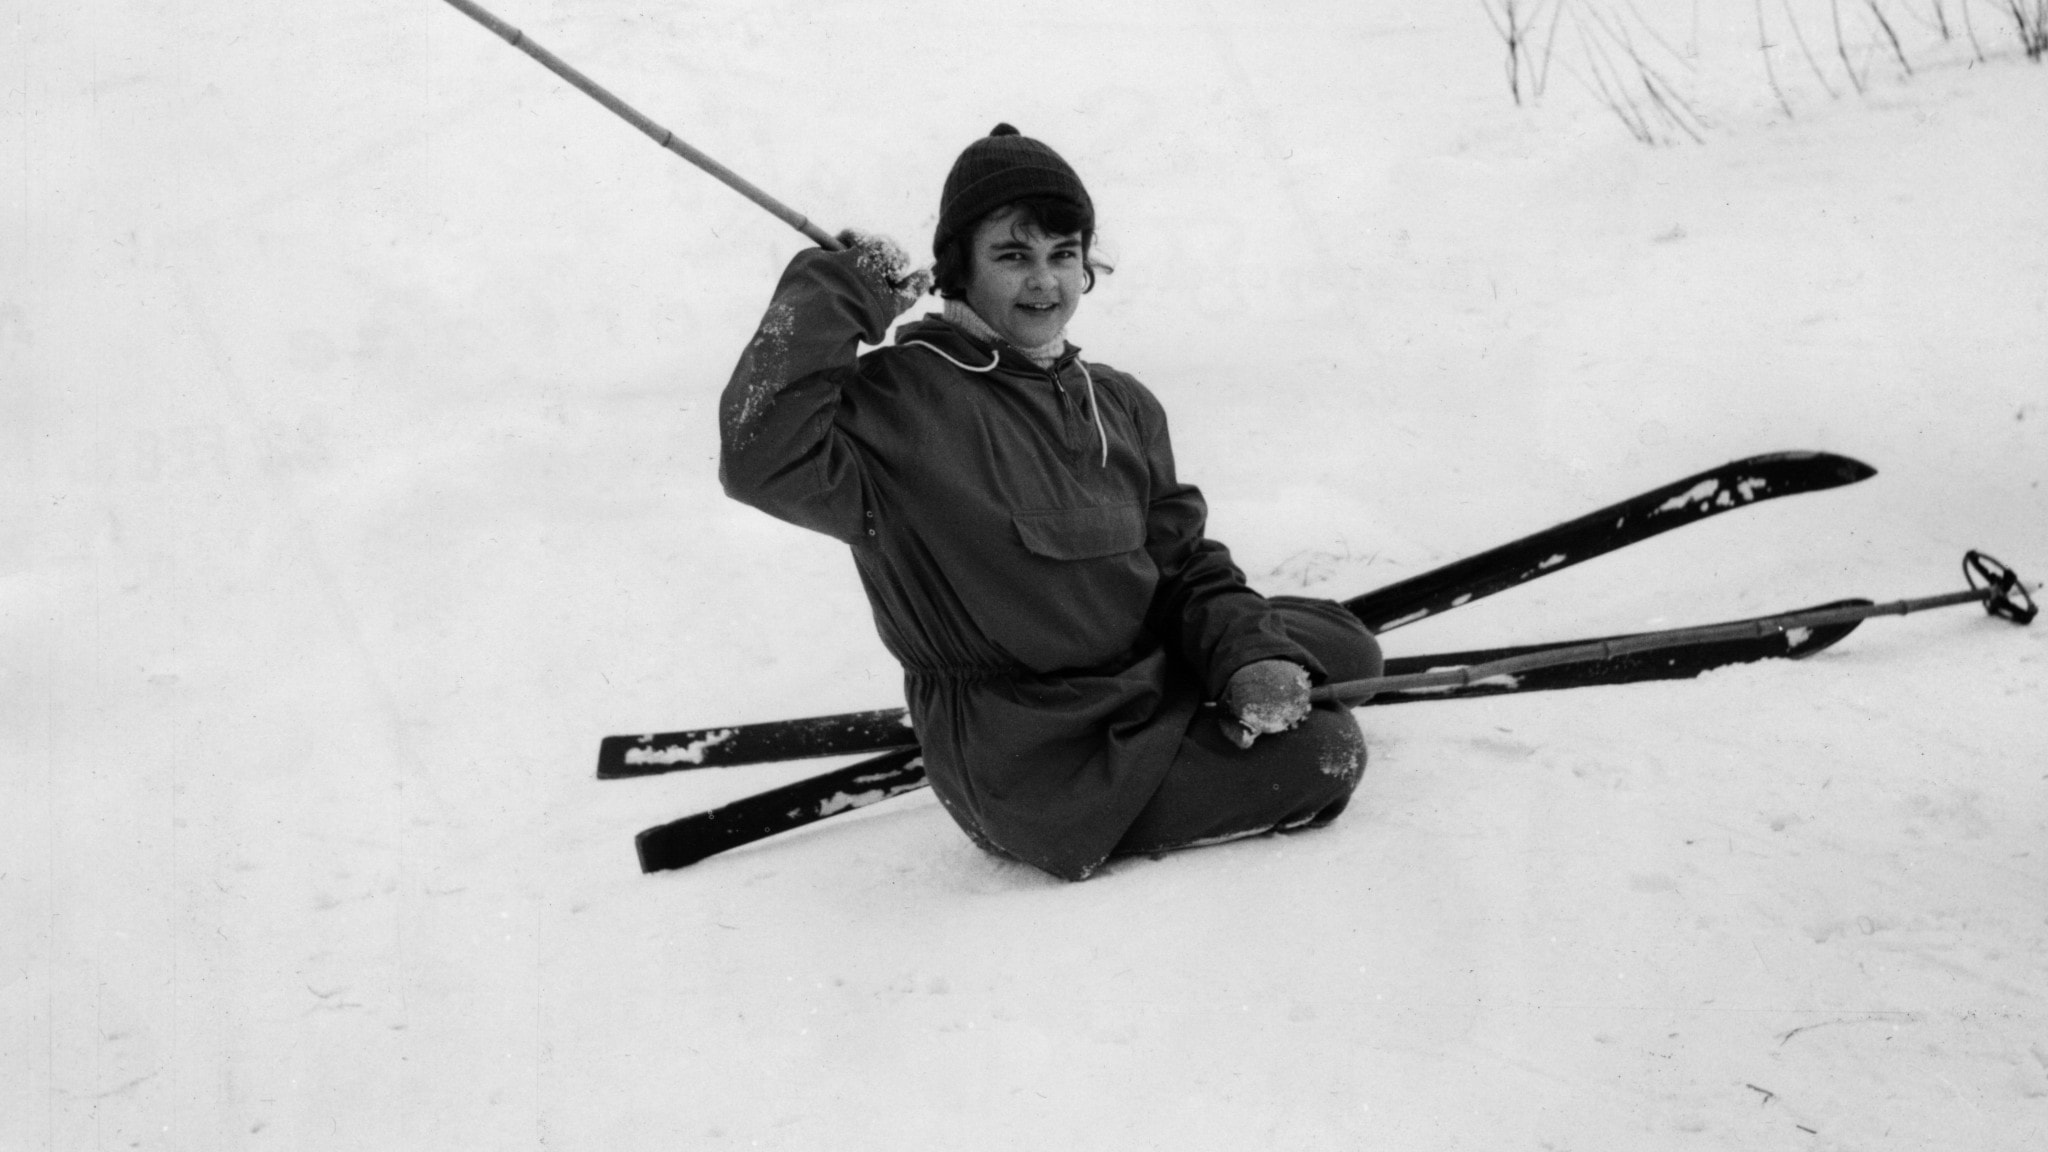 How coal rationing turned into a winter pastime for Swedish schoolchildren - Radio Sweden